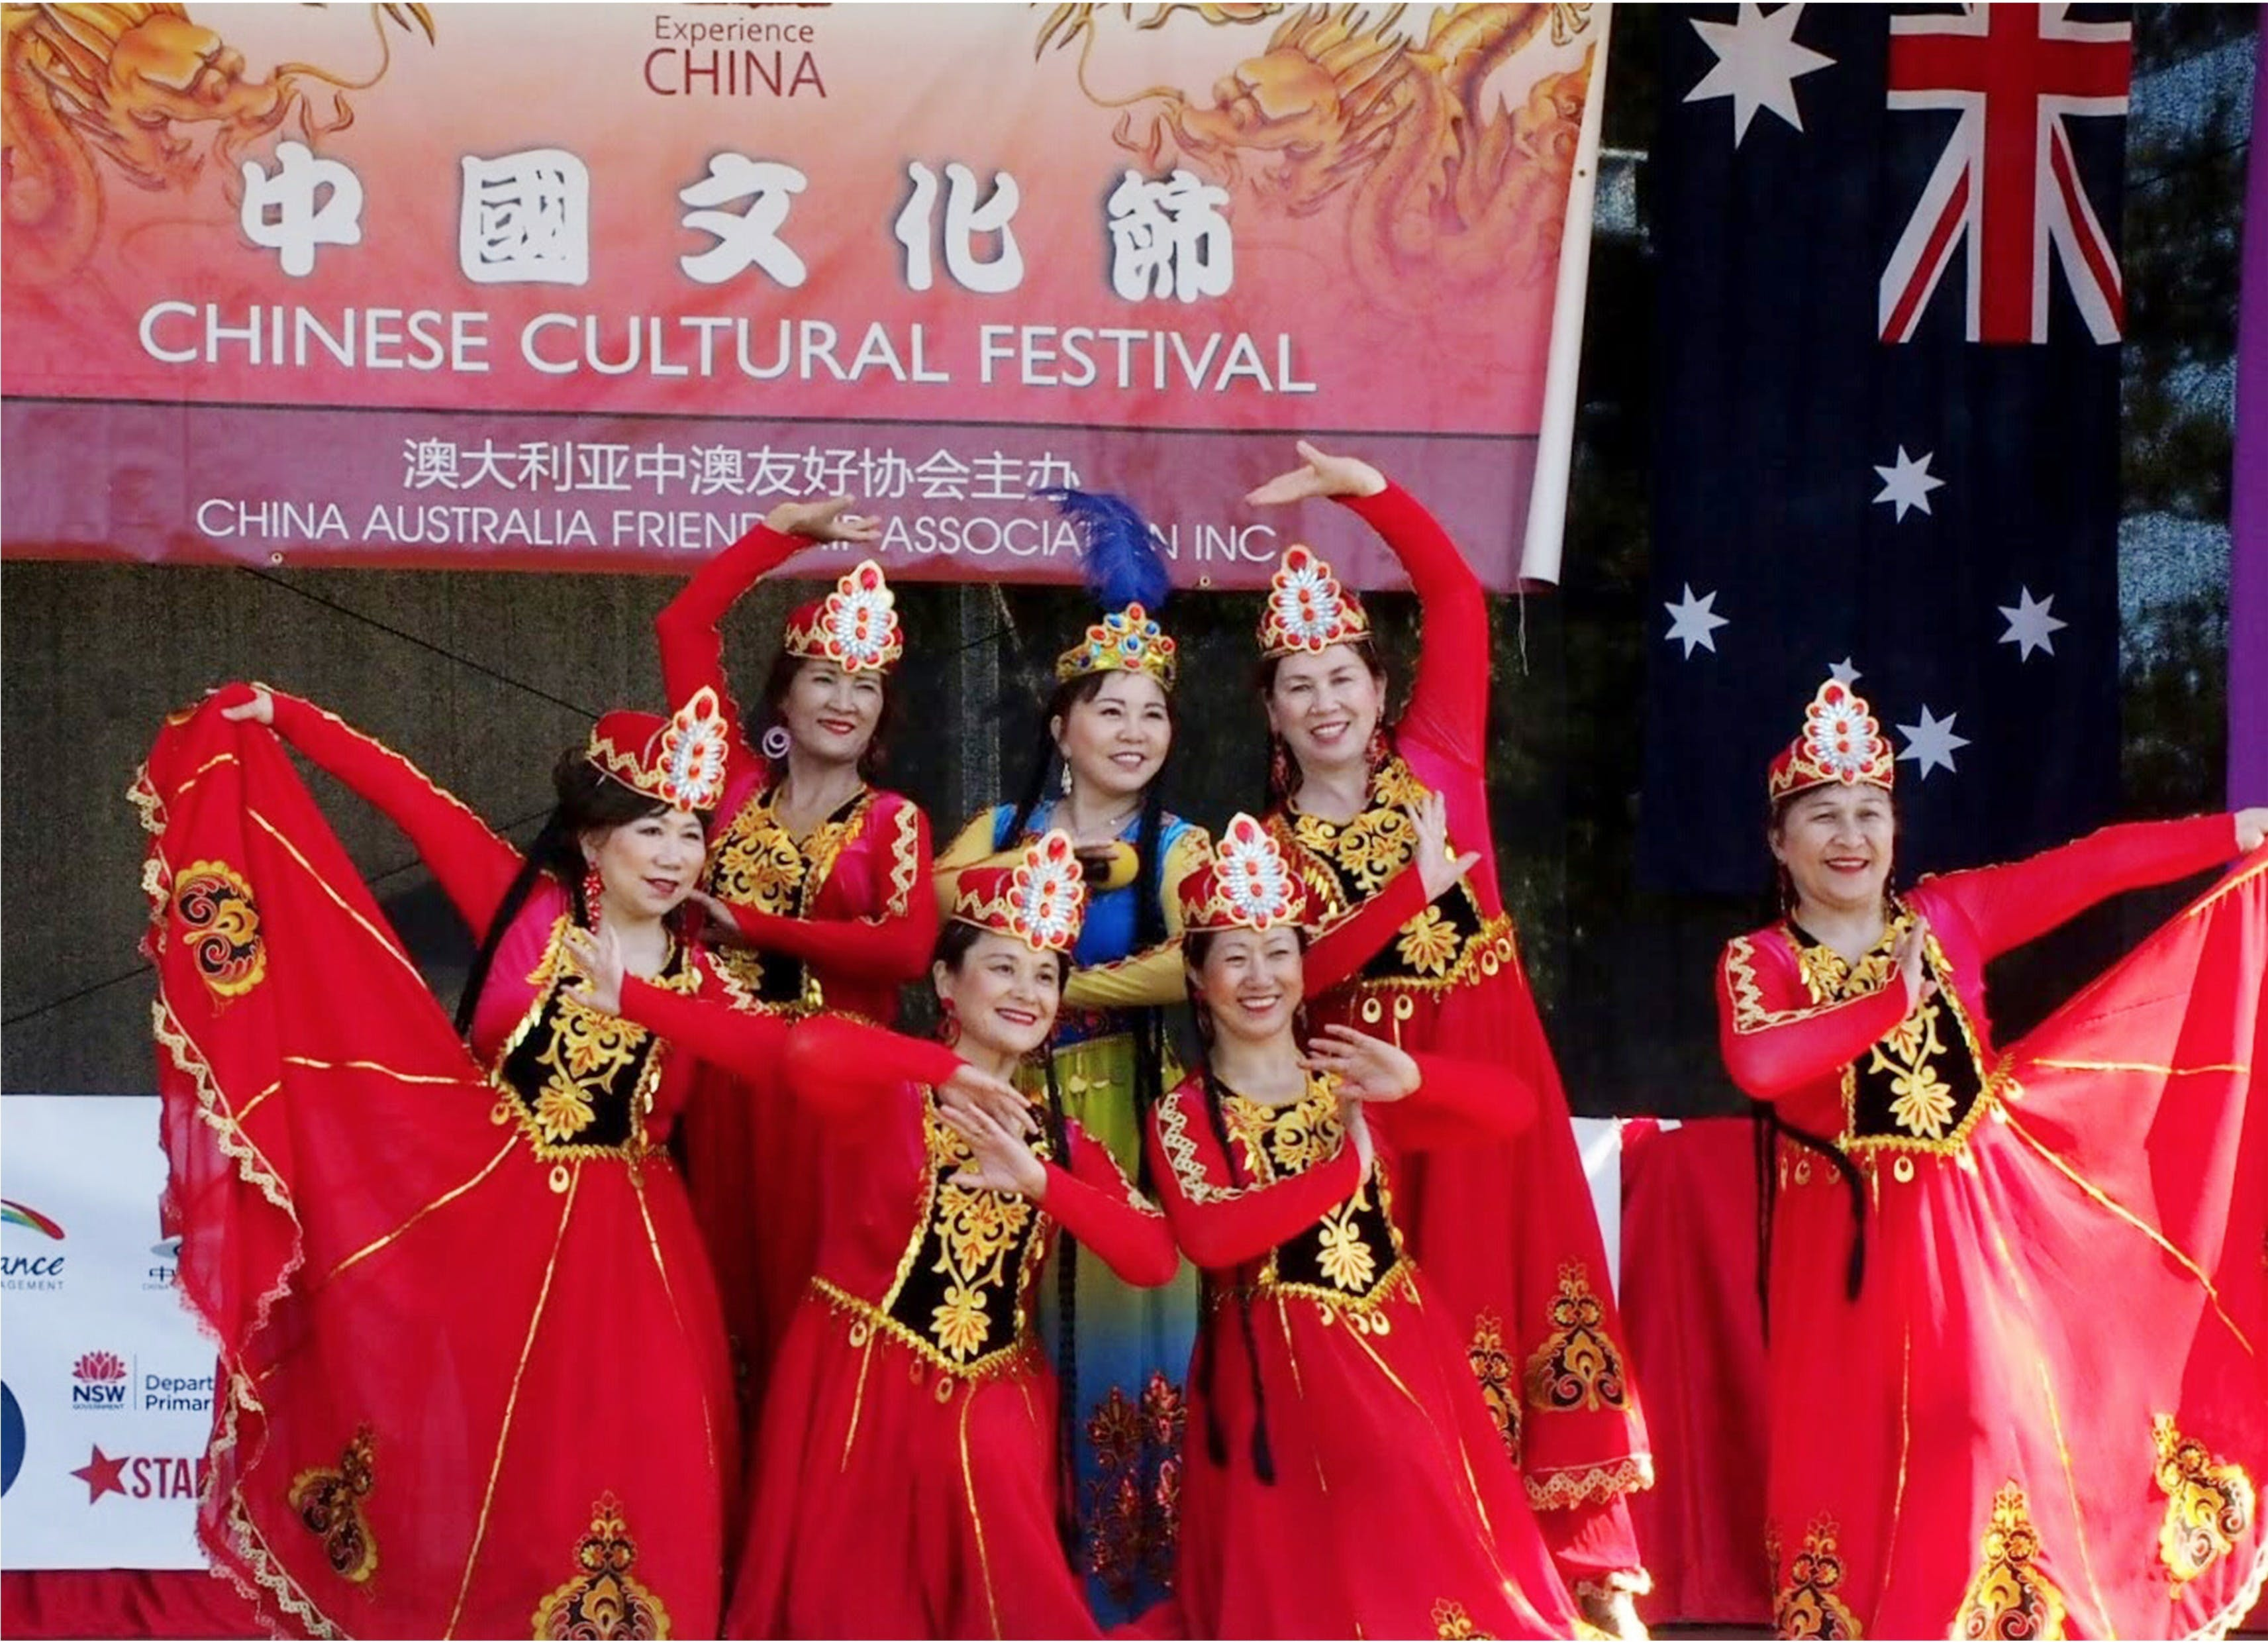 Central Coast Chinese Cultural Festival Moon Festival - Accommodation Burleigh